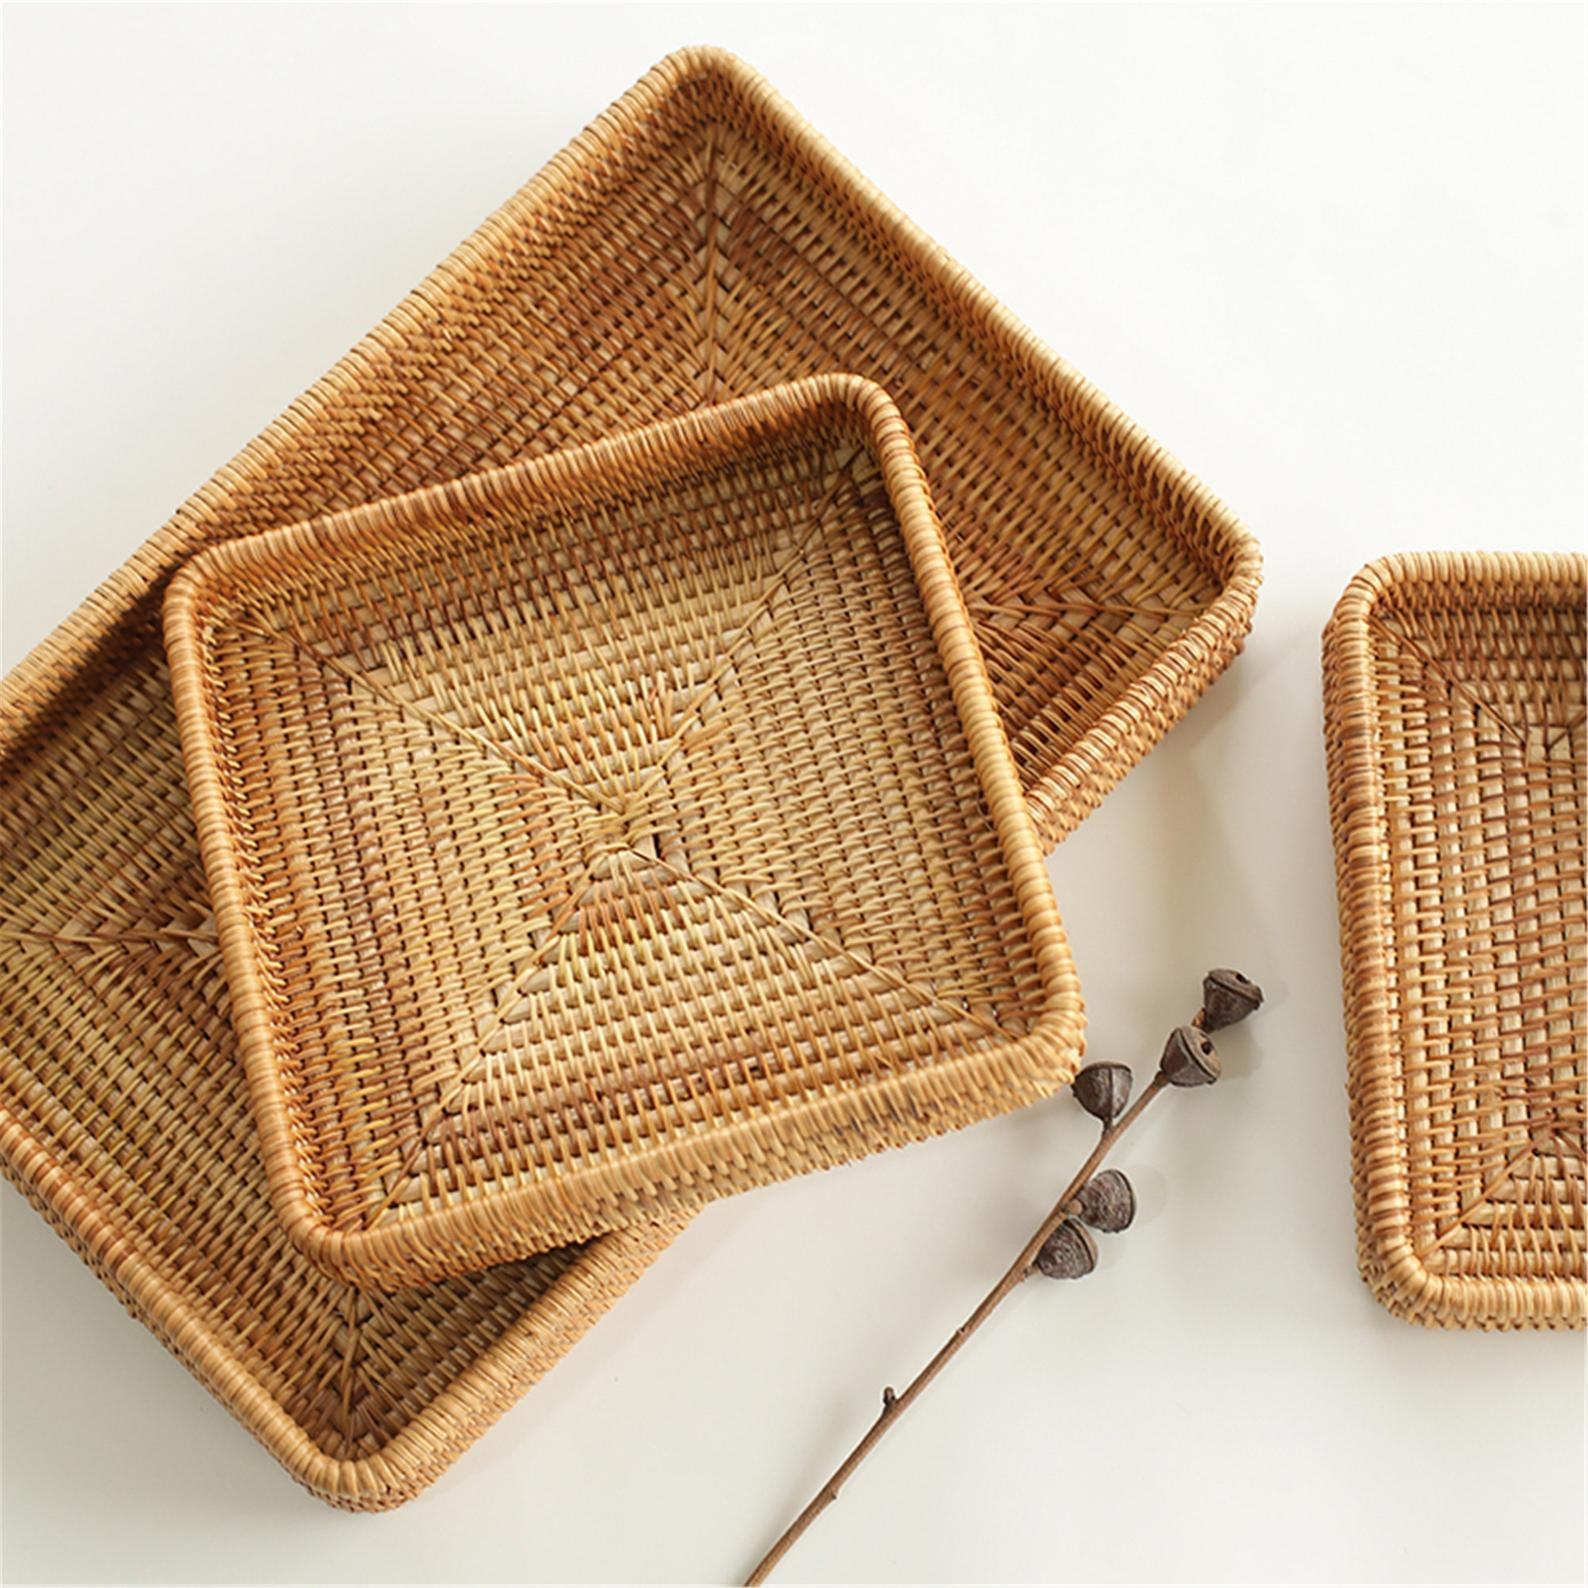 Handmade rattan woven basket,Fruit bread basket,Desktop cosmetics storage box,Housewarming gift